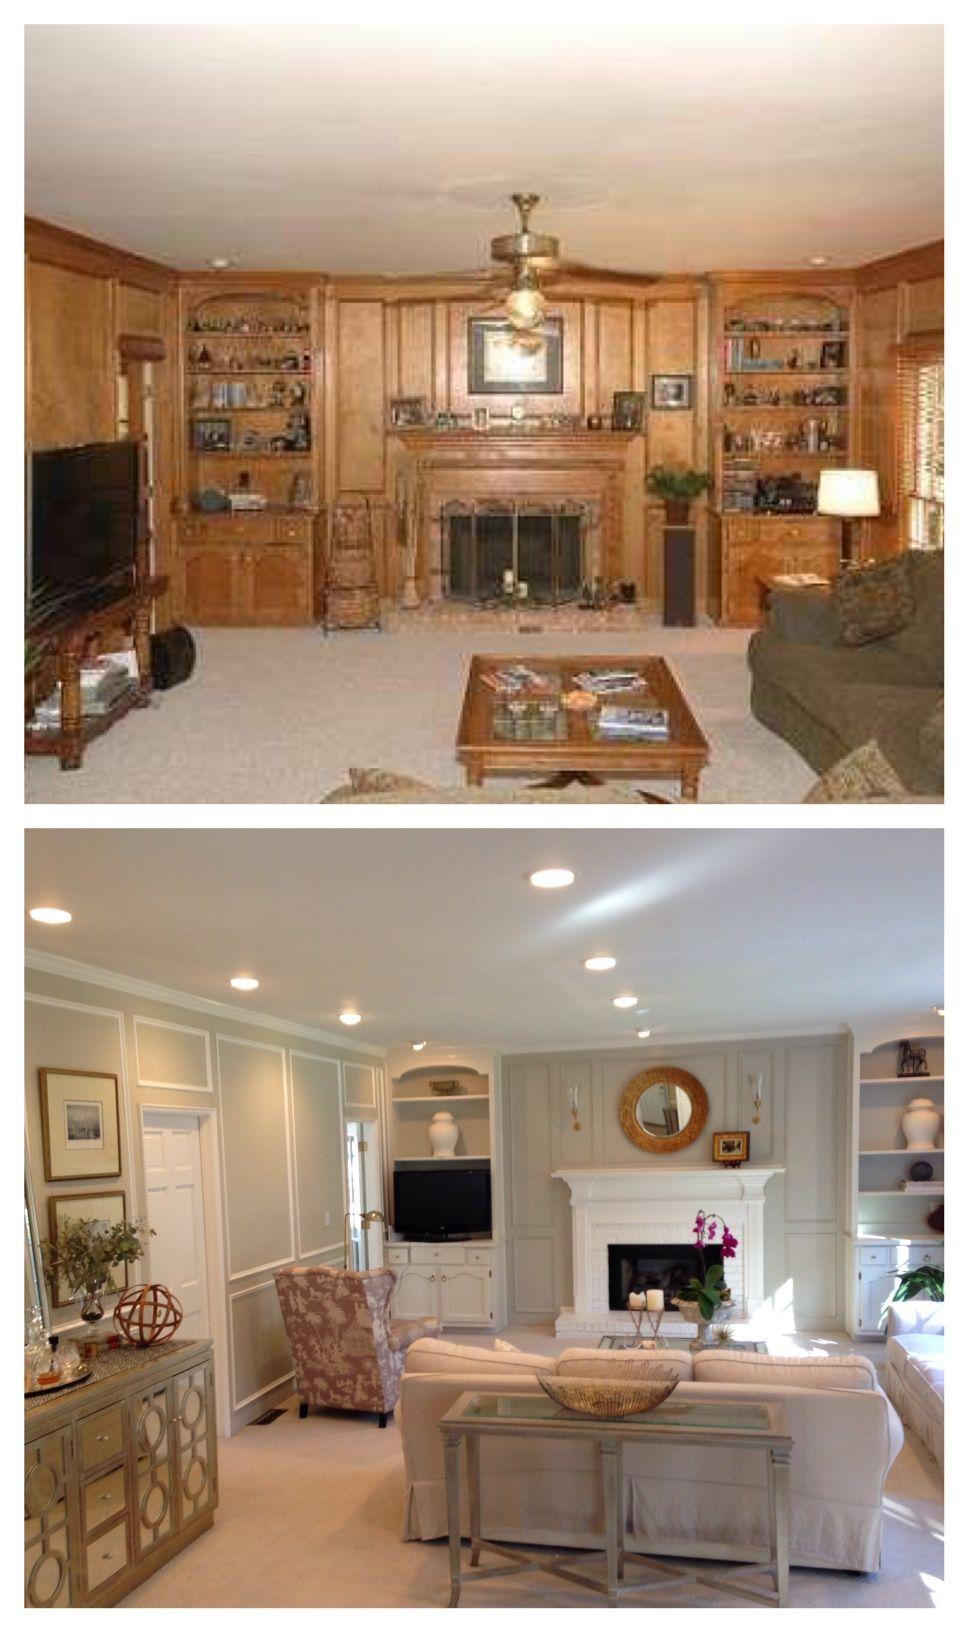 Living Room Before And After Paneling Painted Updated: paneling makeover ideas